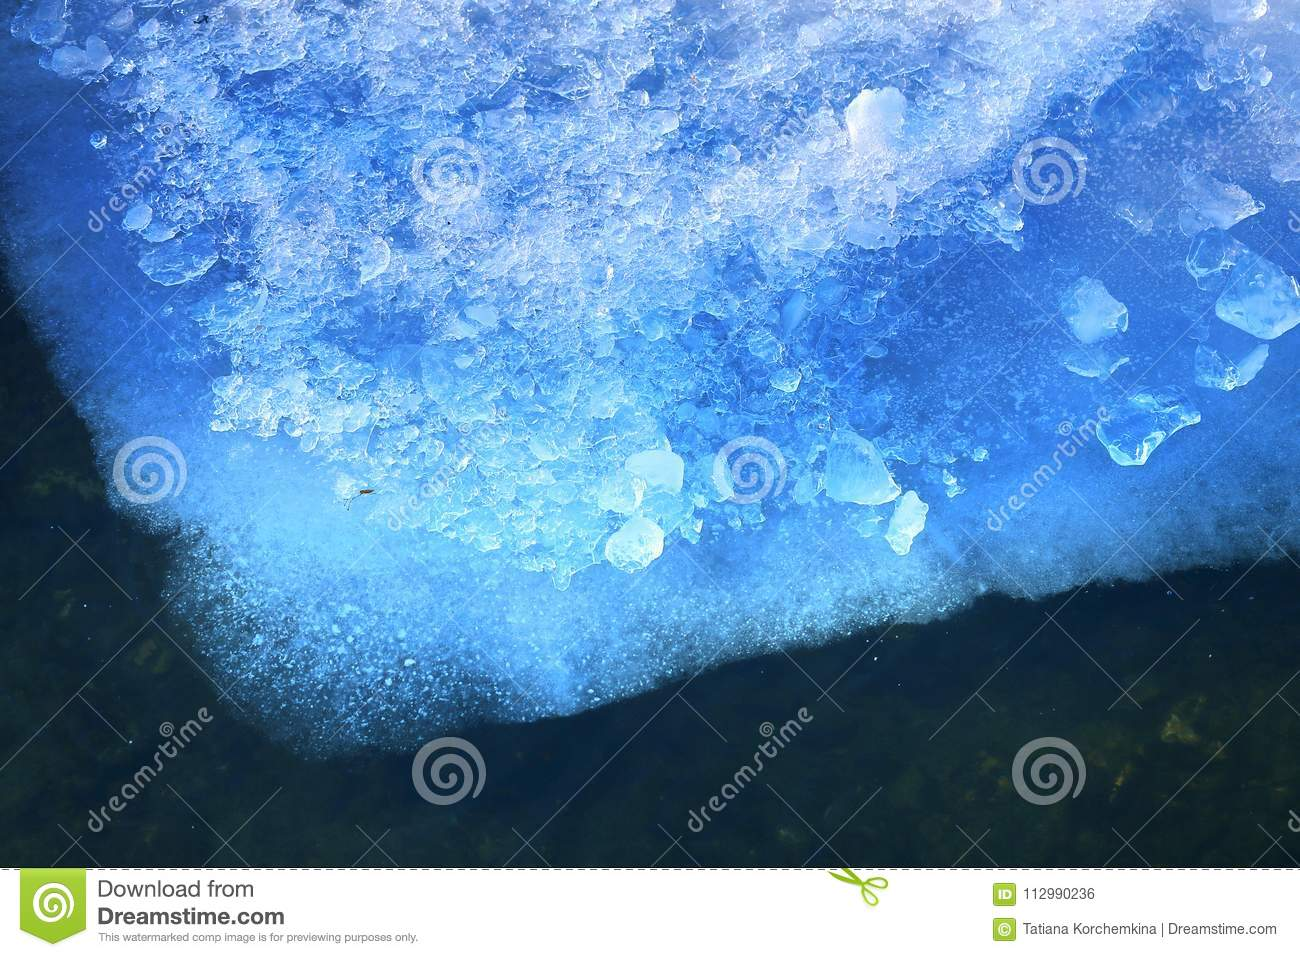 Photo background of macro ice and water